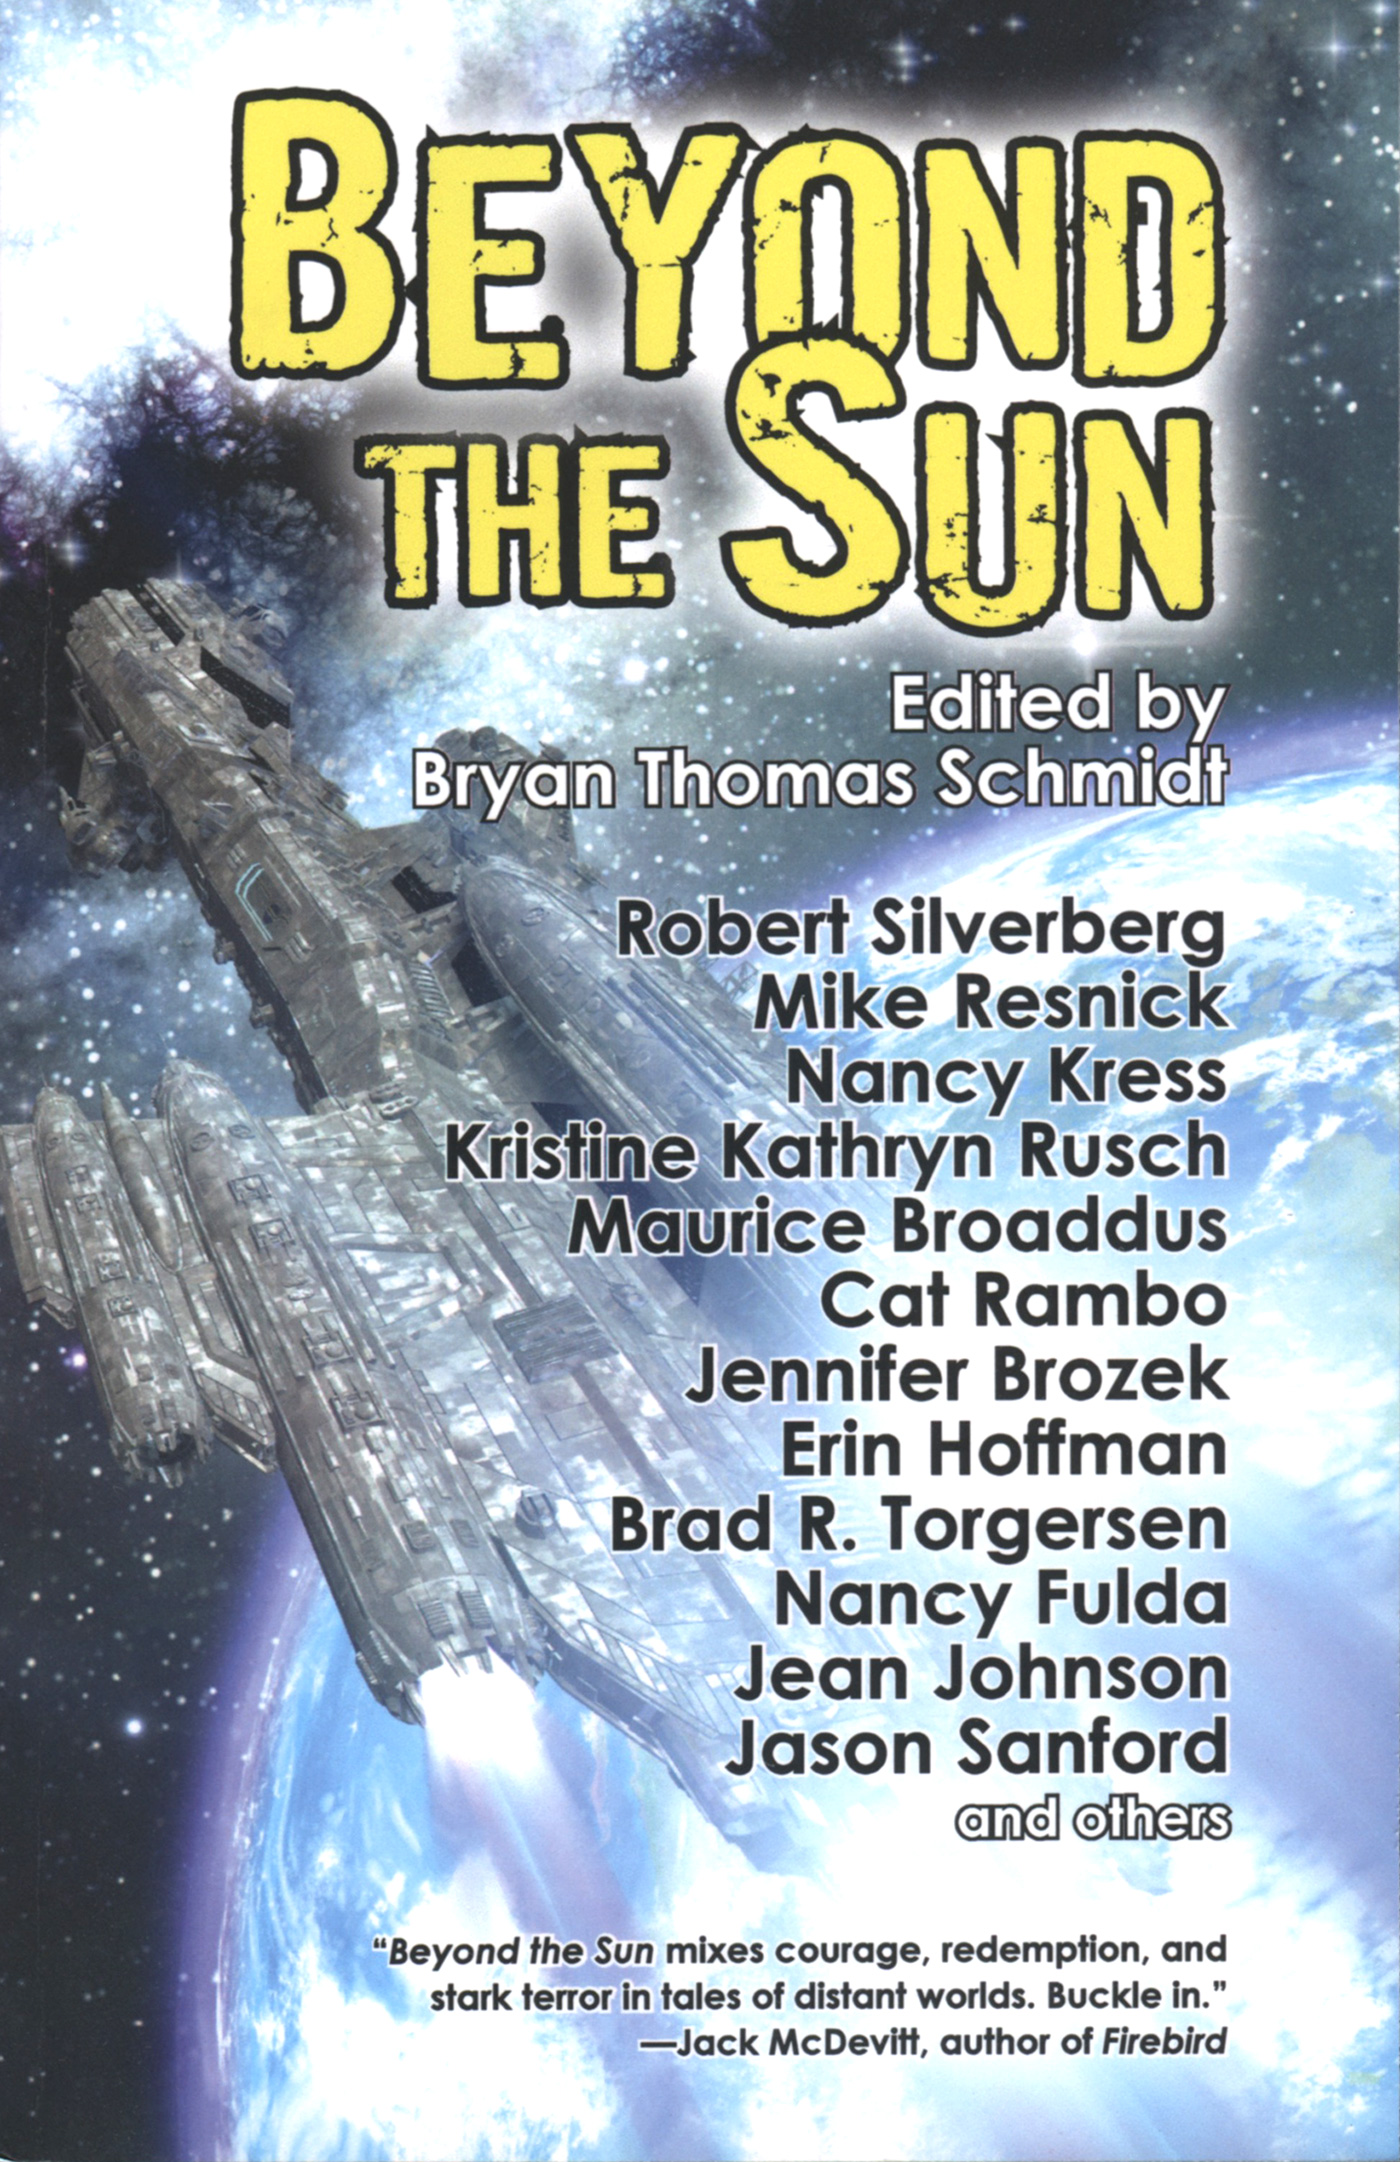 """Beyond the Sun"" edited by Bryan Thomas Schmidt."